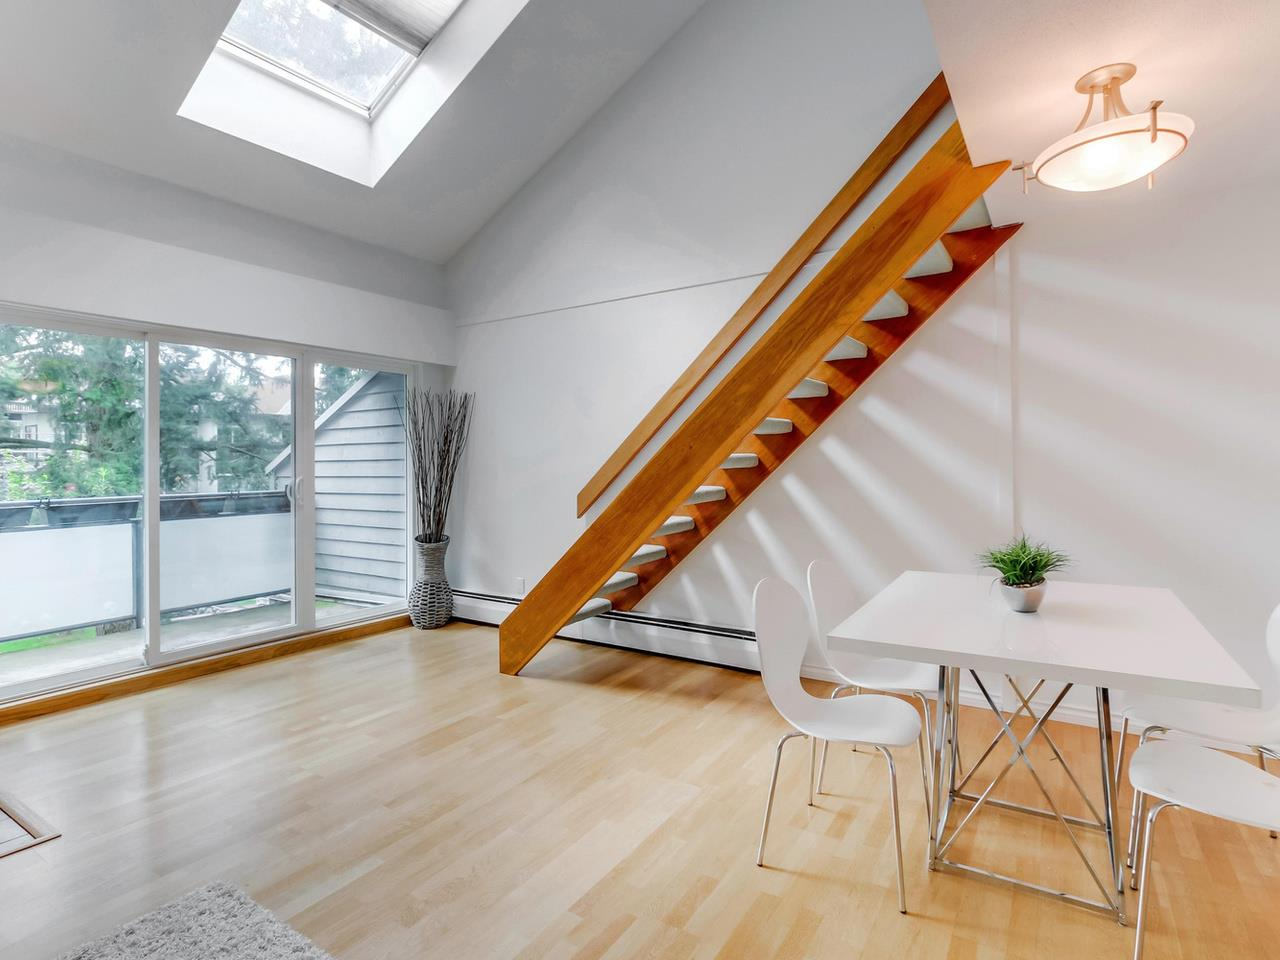 Main Photo: PH1 2125 YORK AVENUE in Vancouver: Kitsilano Condo for sale (Vancouver West)  : MLS(r) # R2089526